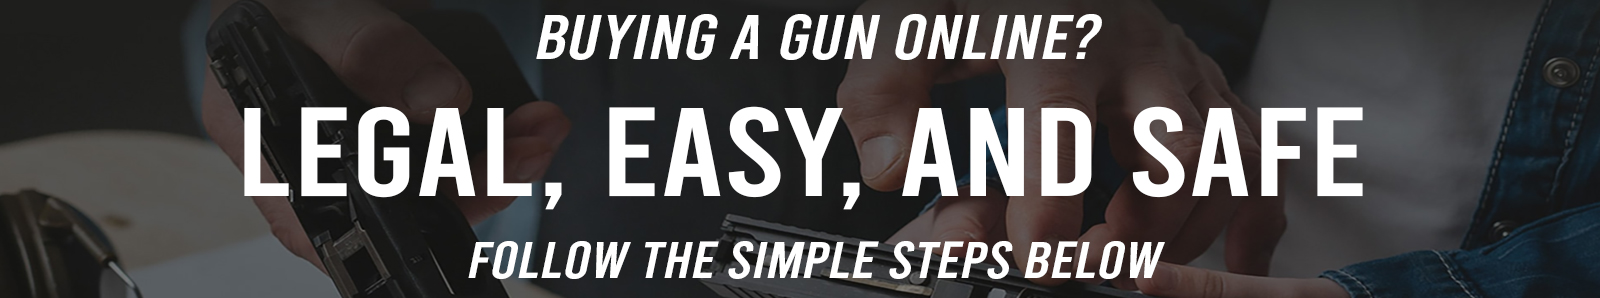 Buying a gun online? Legal, Easy, And Safe. Follow the simple steps below.